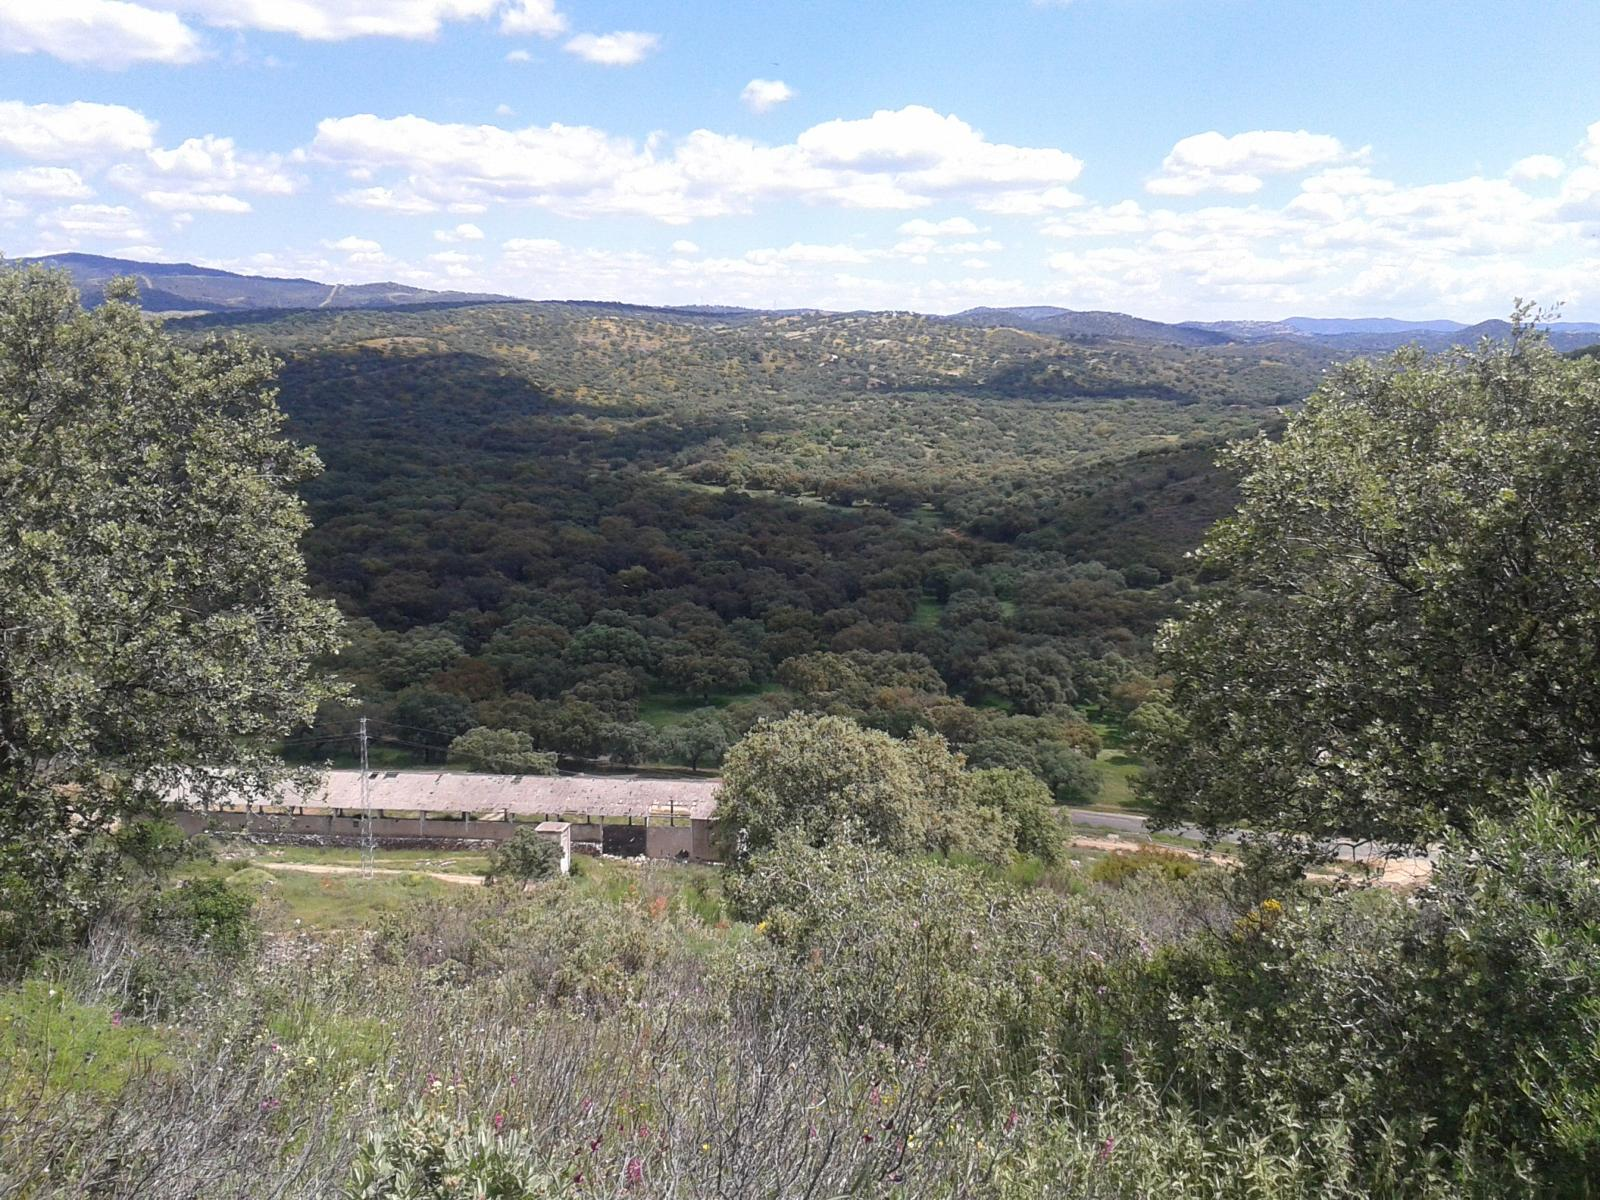 Photo of arroyo de Los Molinos y monte de los Covachos